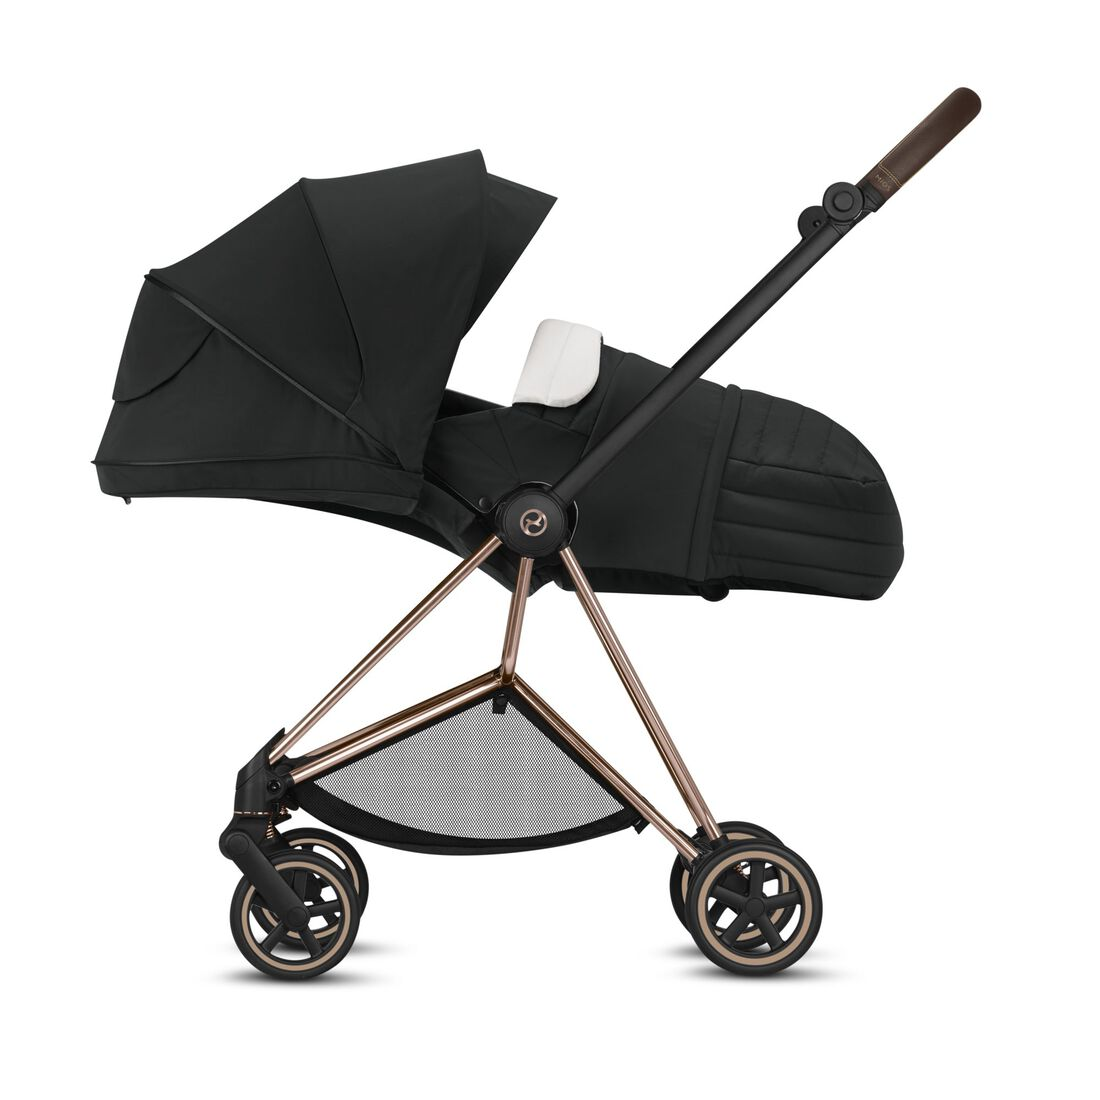 Mios Frame - 4-IN-1 Travel System